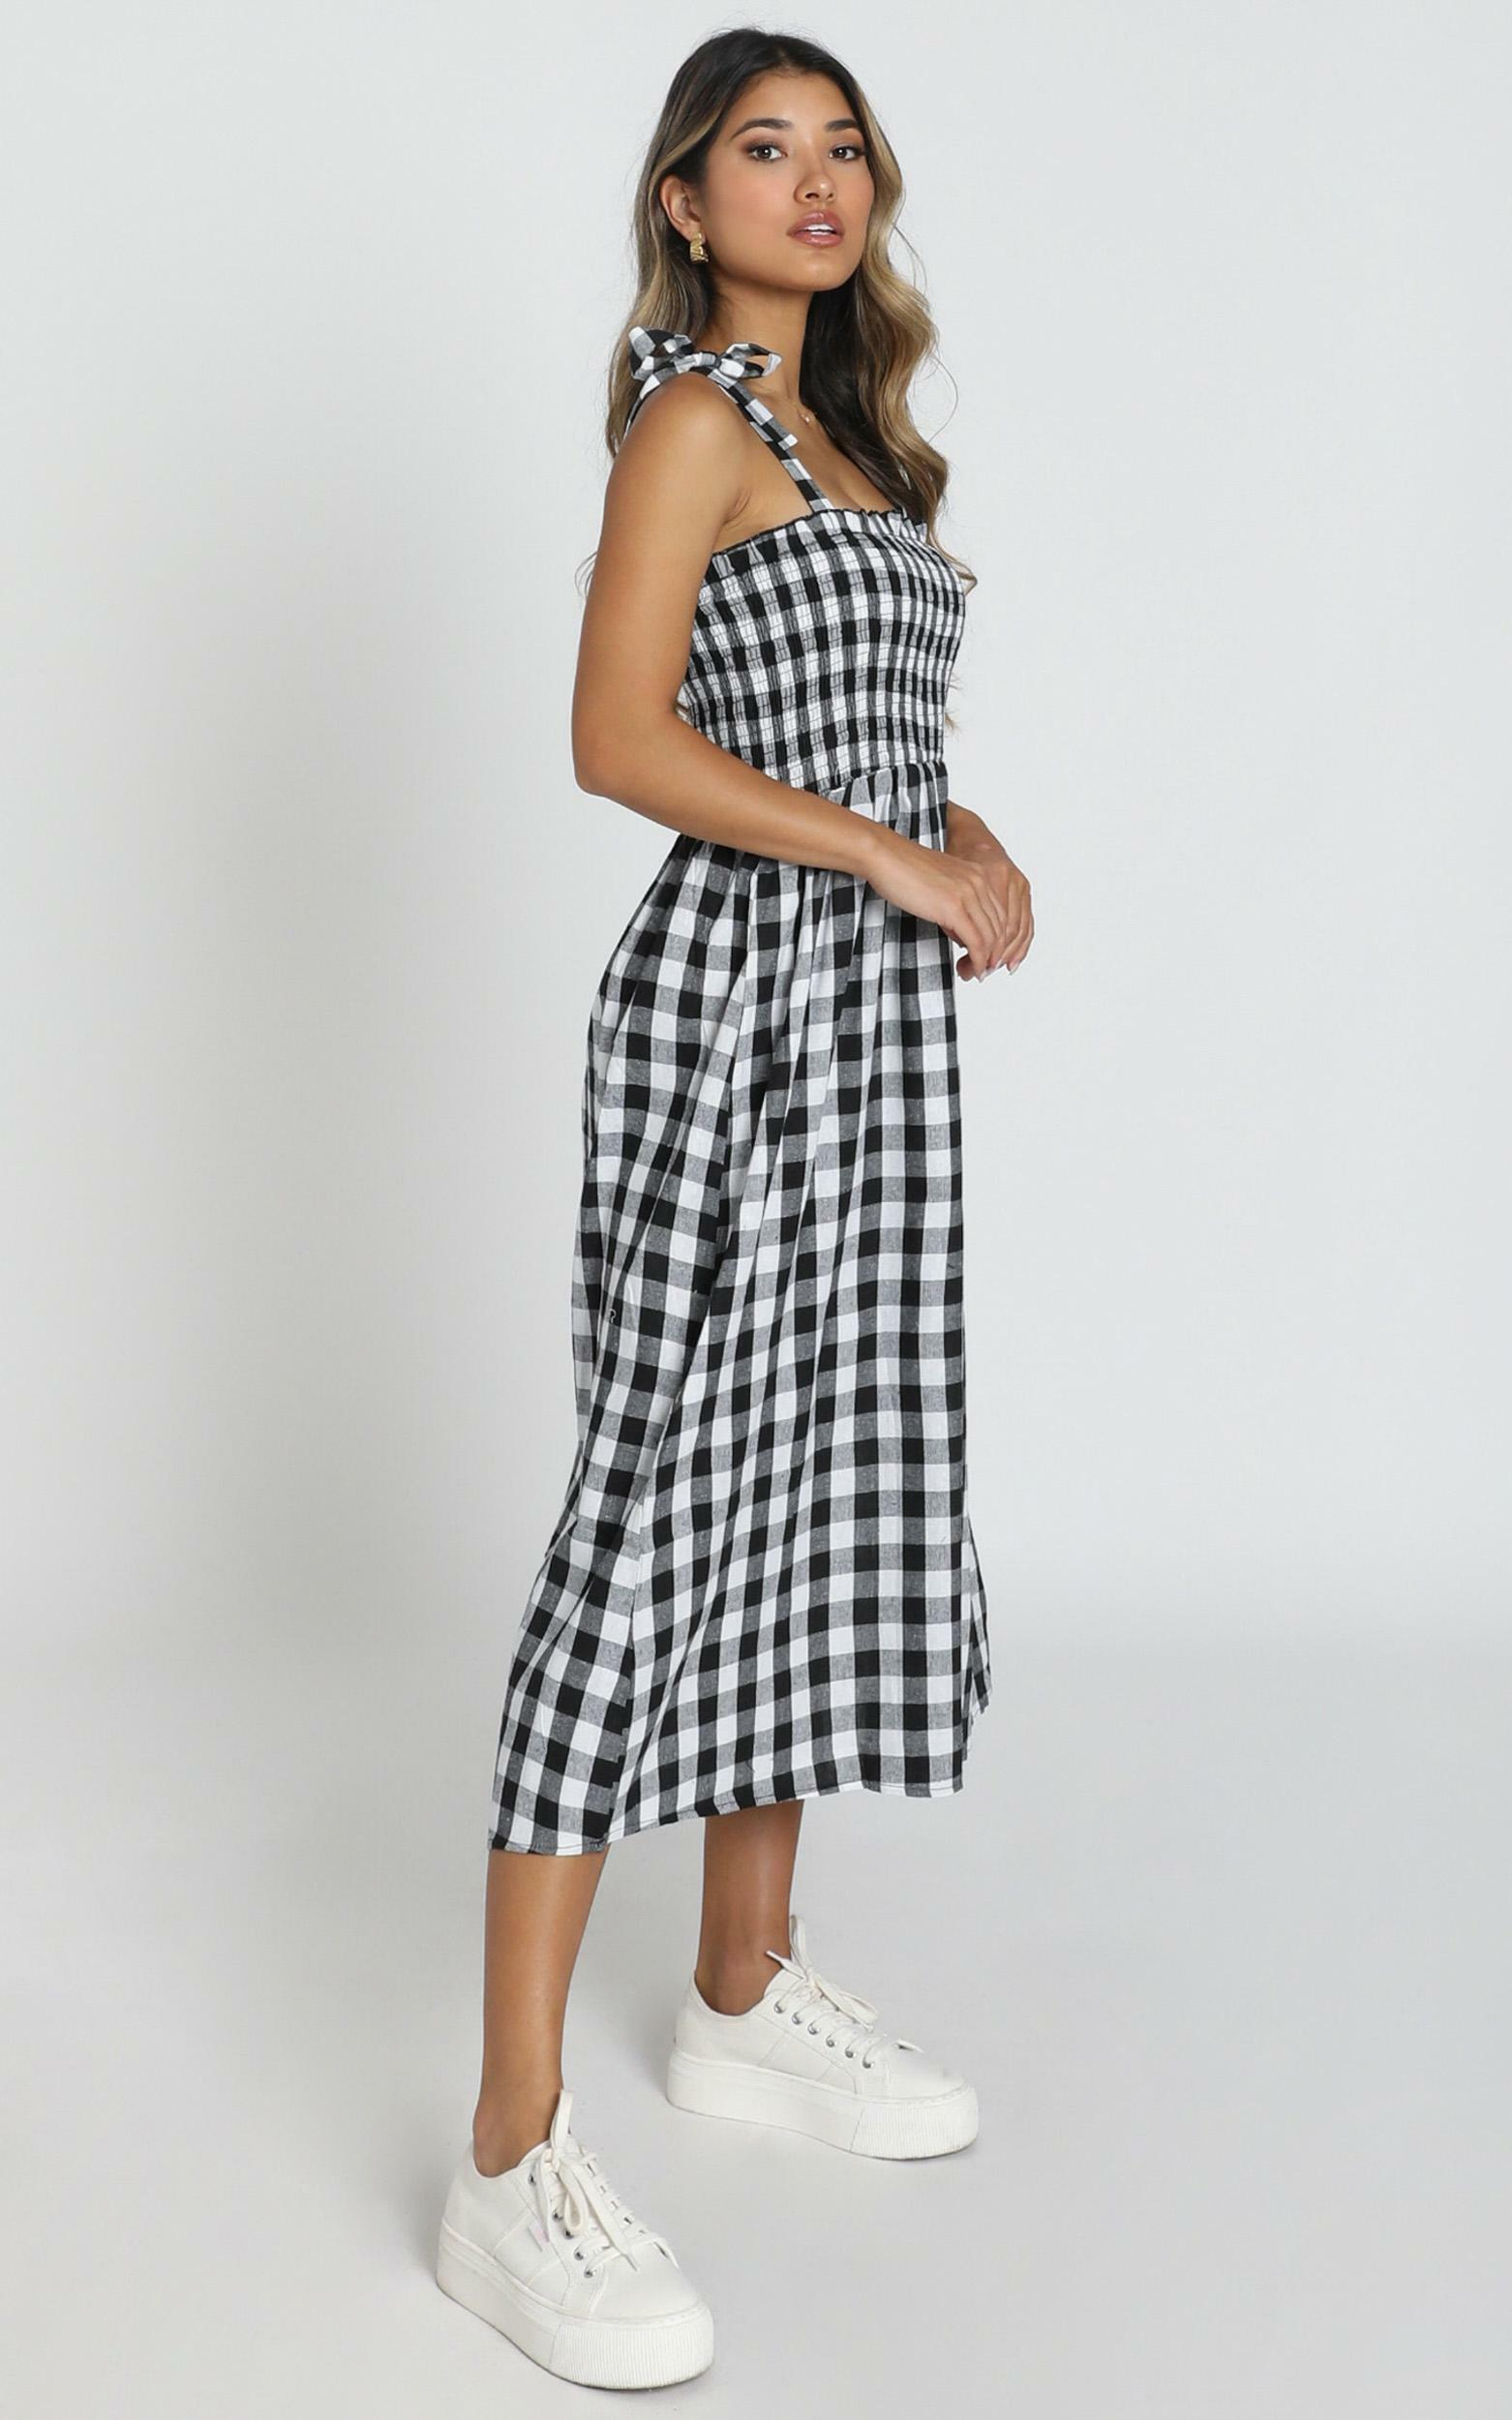 European Love Dress in black and white check - 6 (XS), Black, hi-res image number null